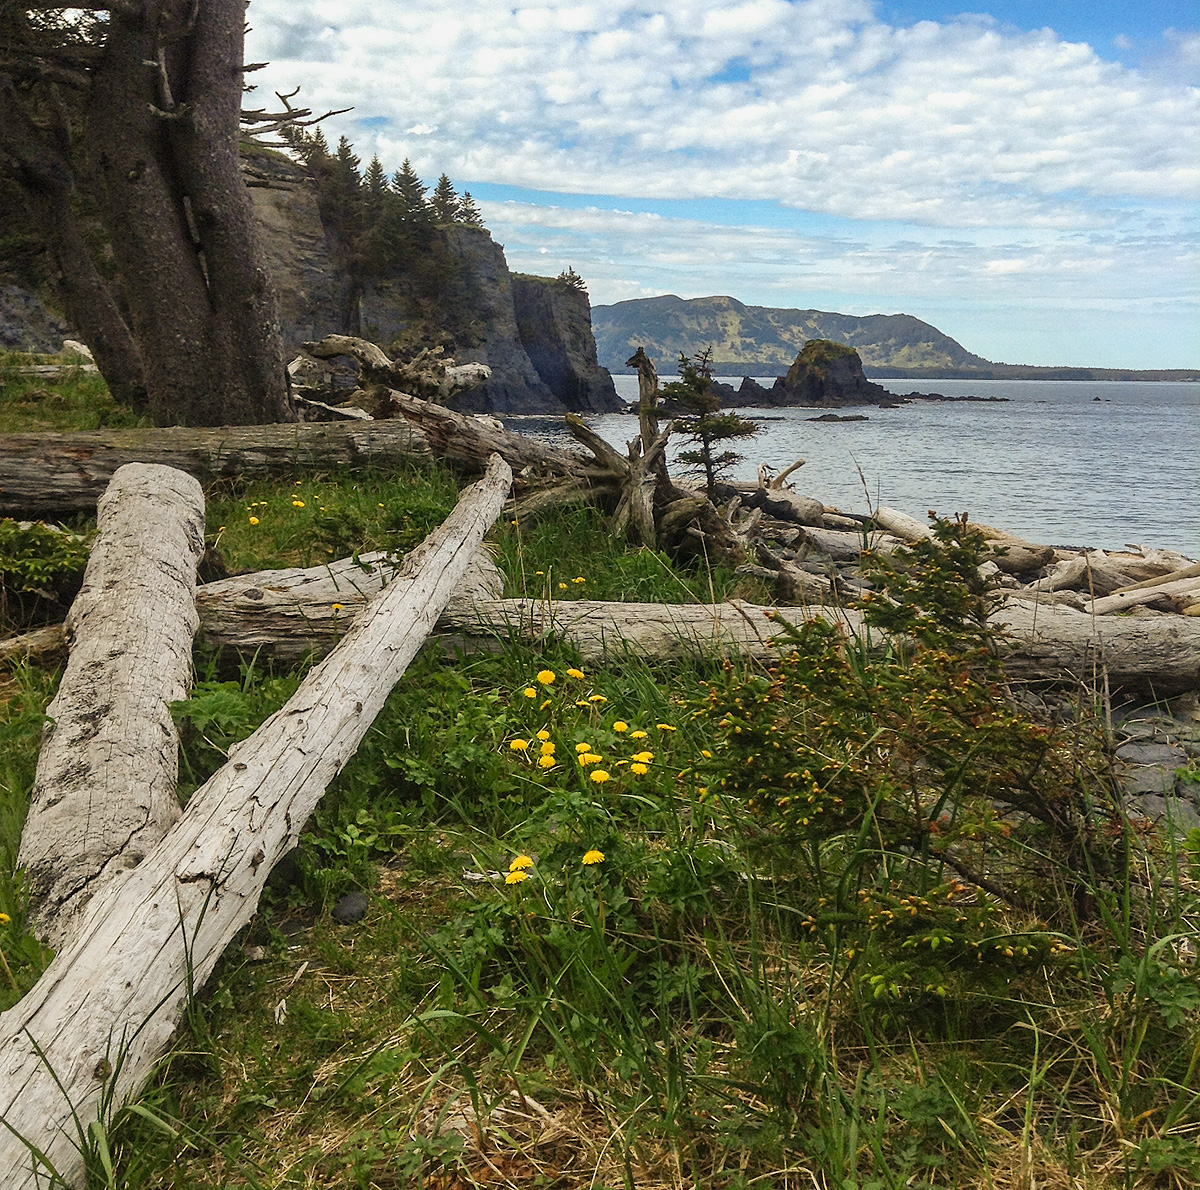 Driftwood collects along the shore of a remote beach on Kodiak Island. Photo © copyright by Michele Faucher.